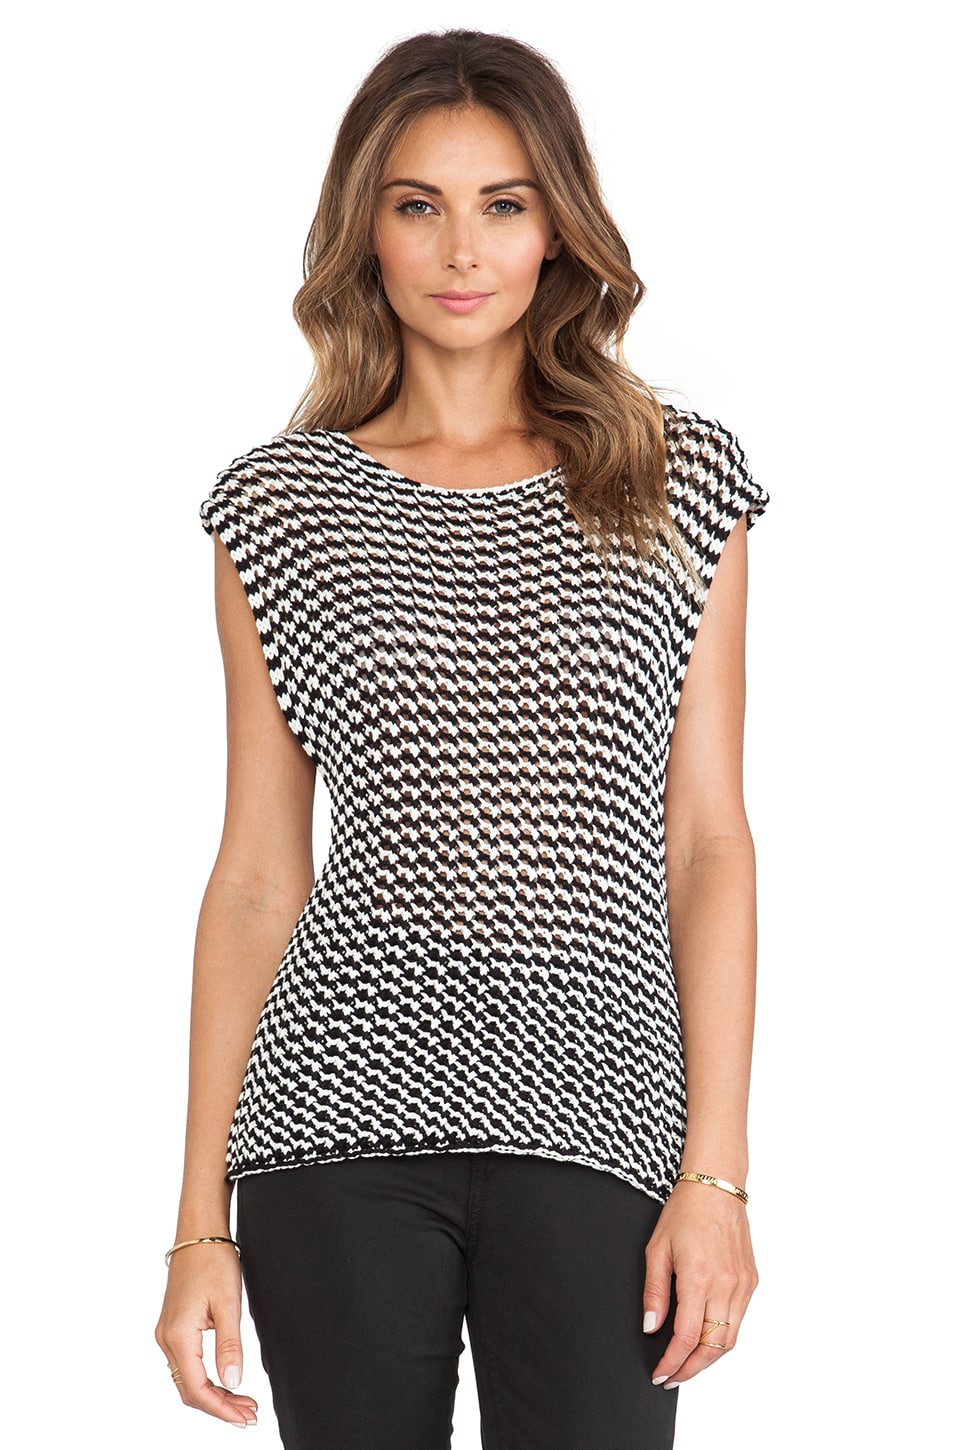 Trina Turk Avena Top in Black